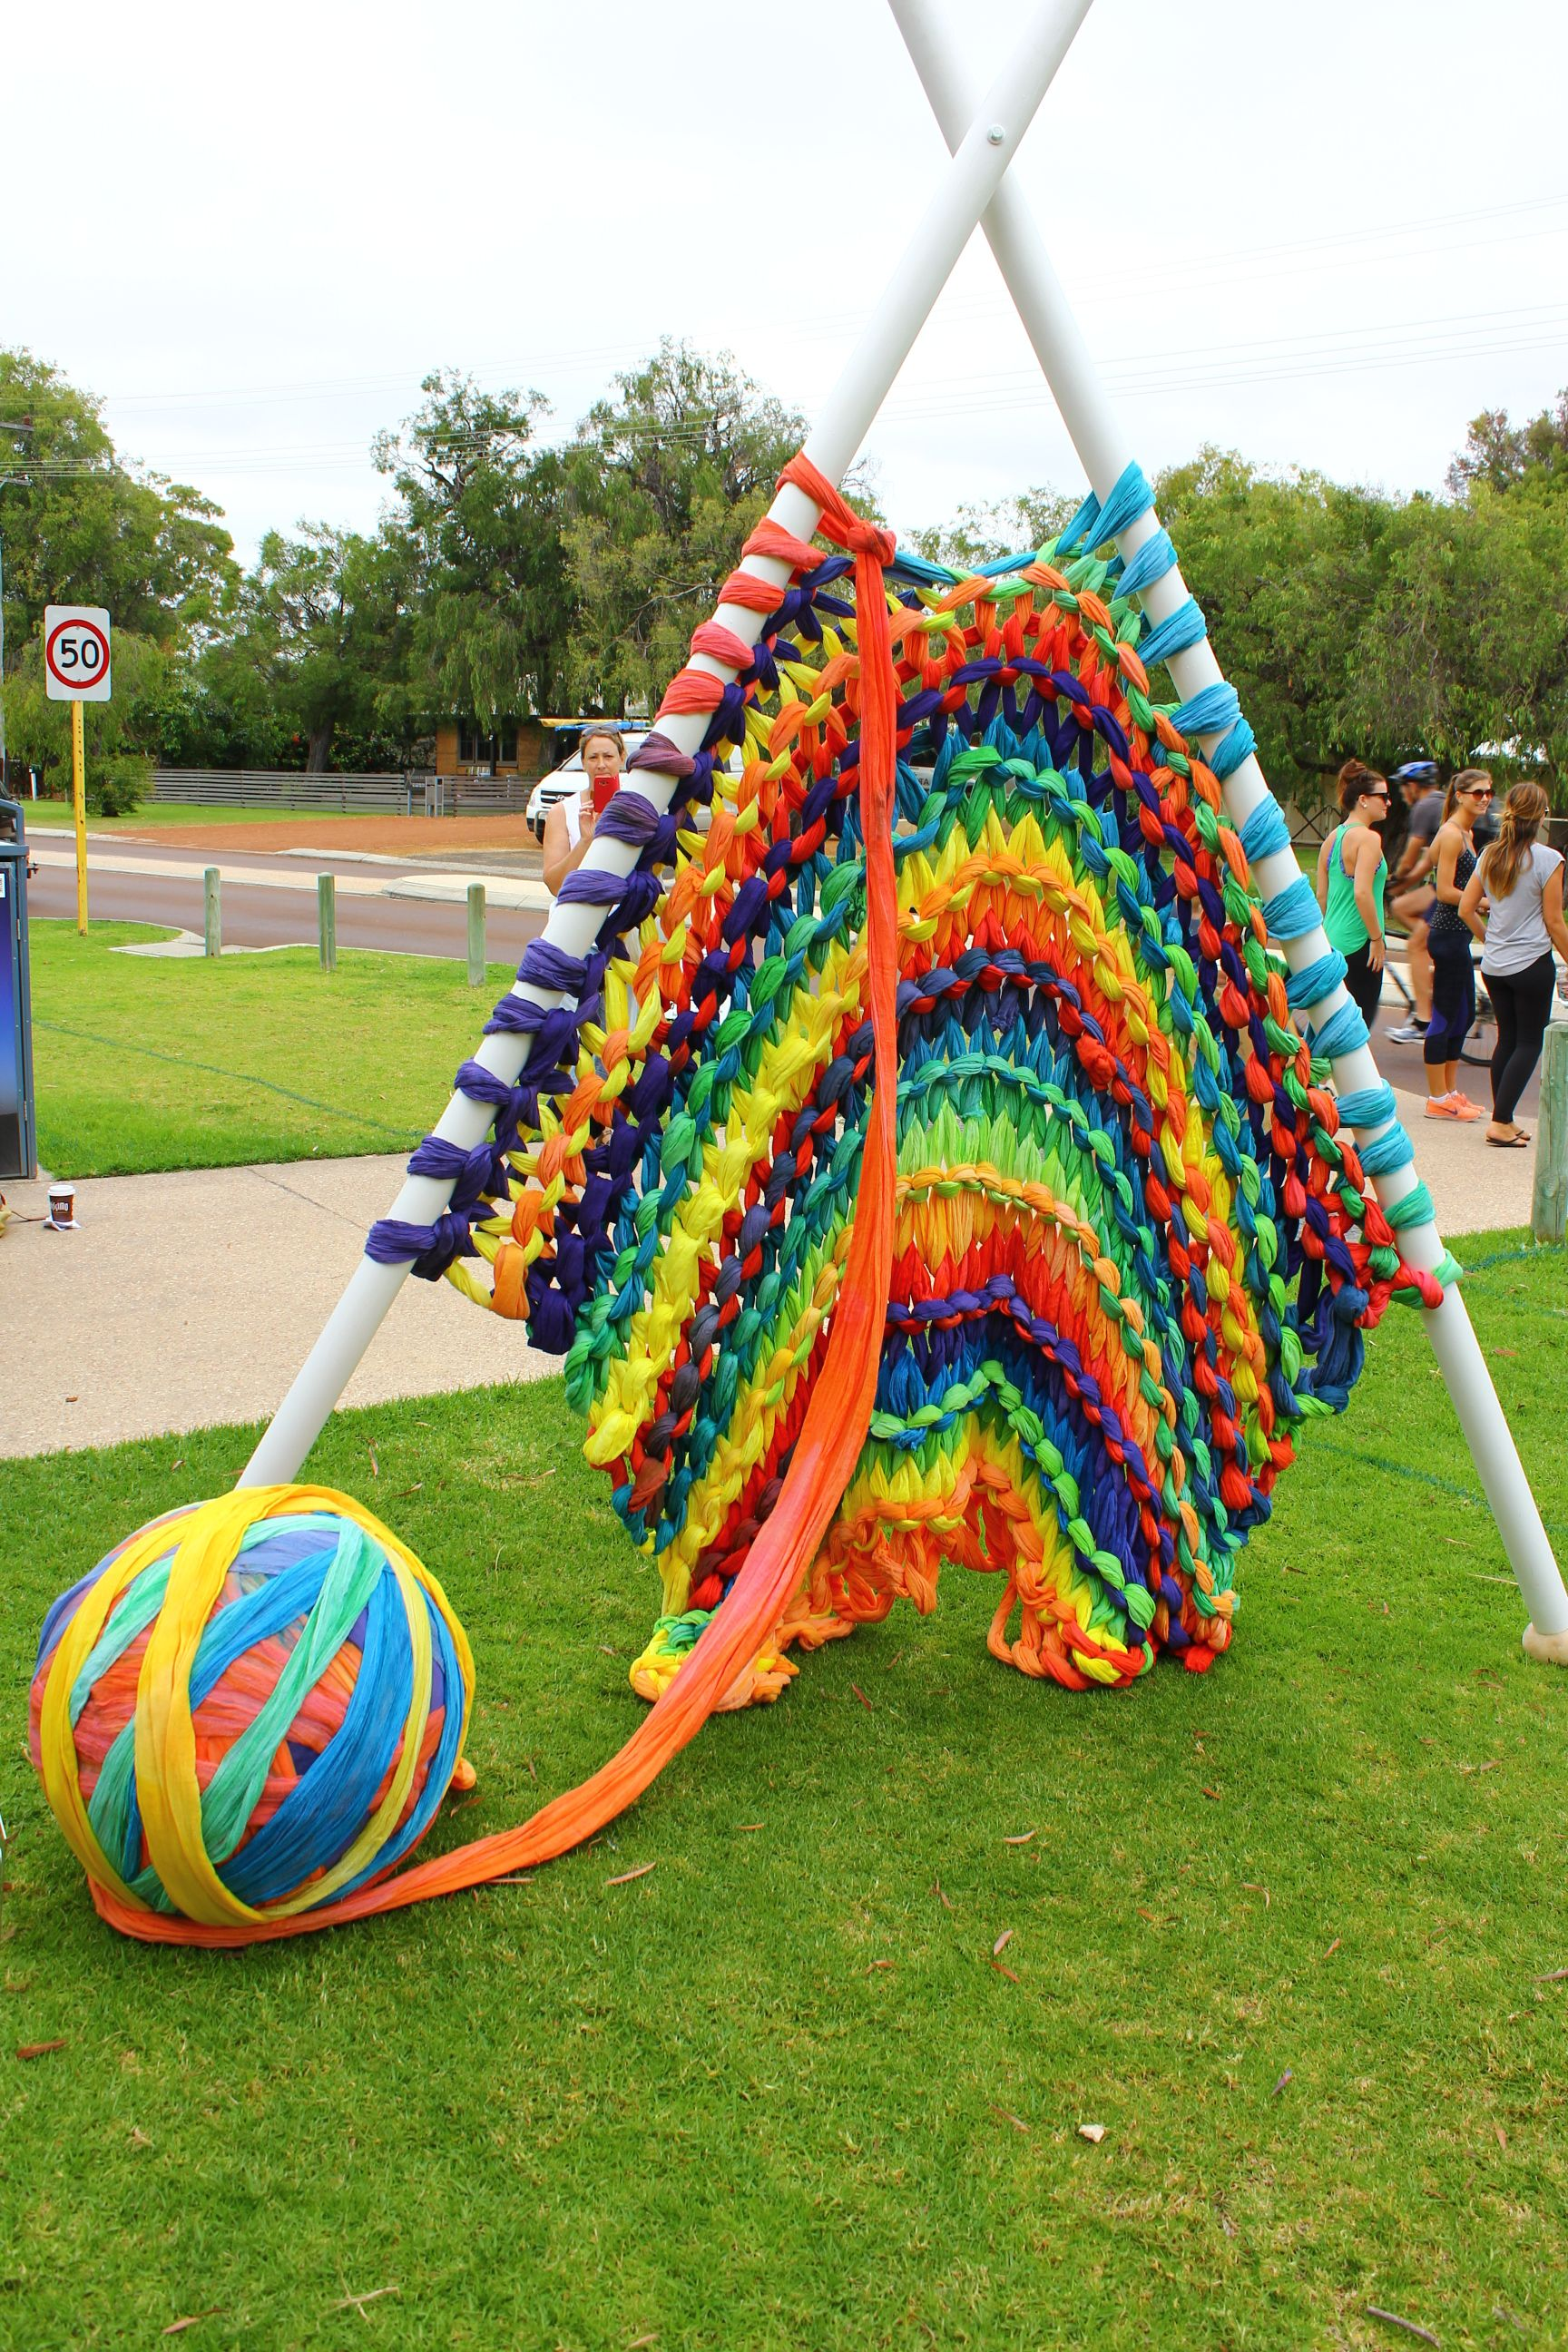 Steiner Knitting Rhyme : Giant knitting sculpture created by and year olds at